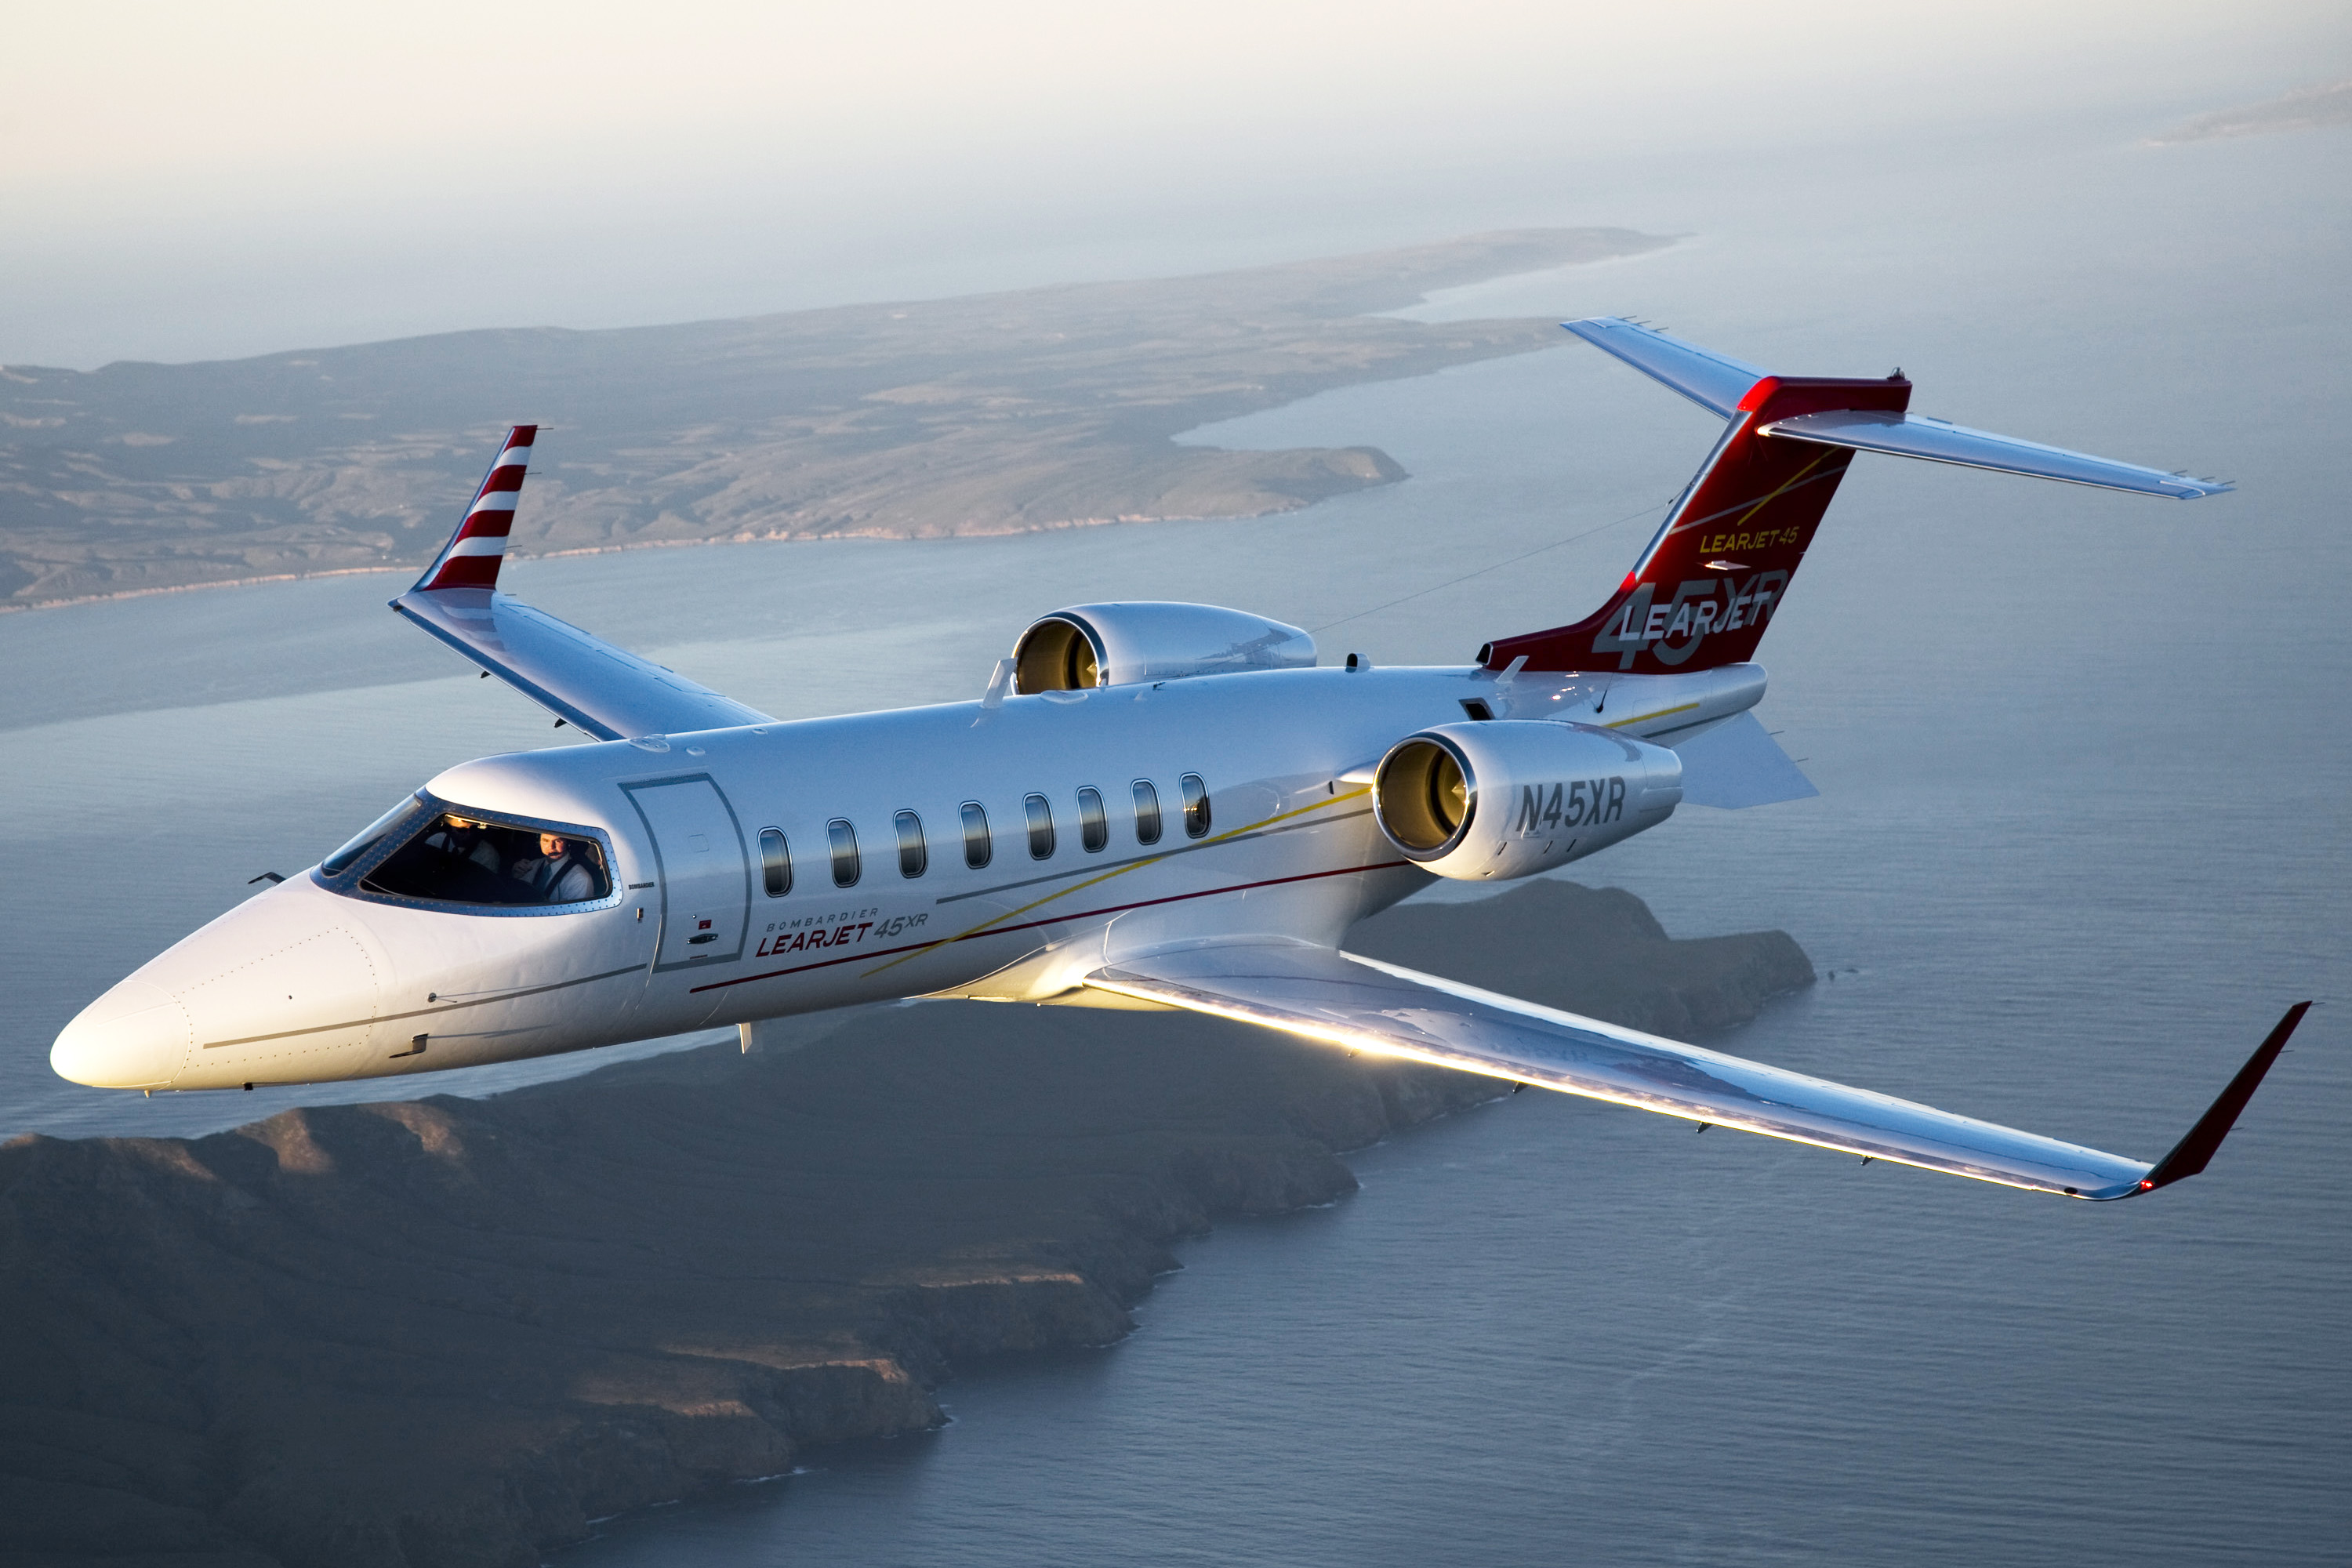 Lear 45 in air